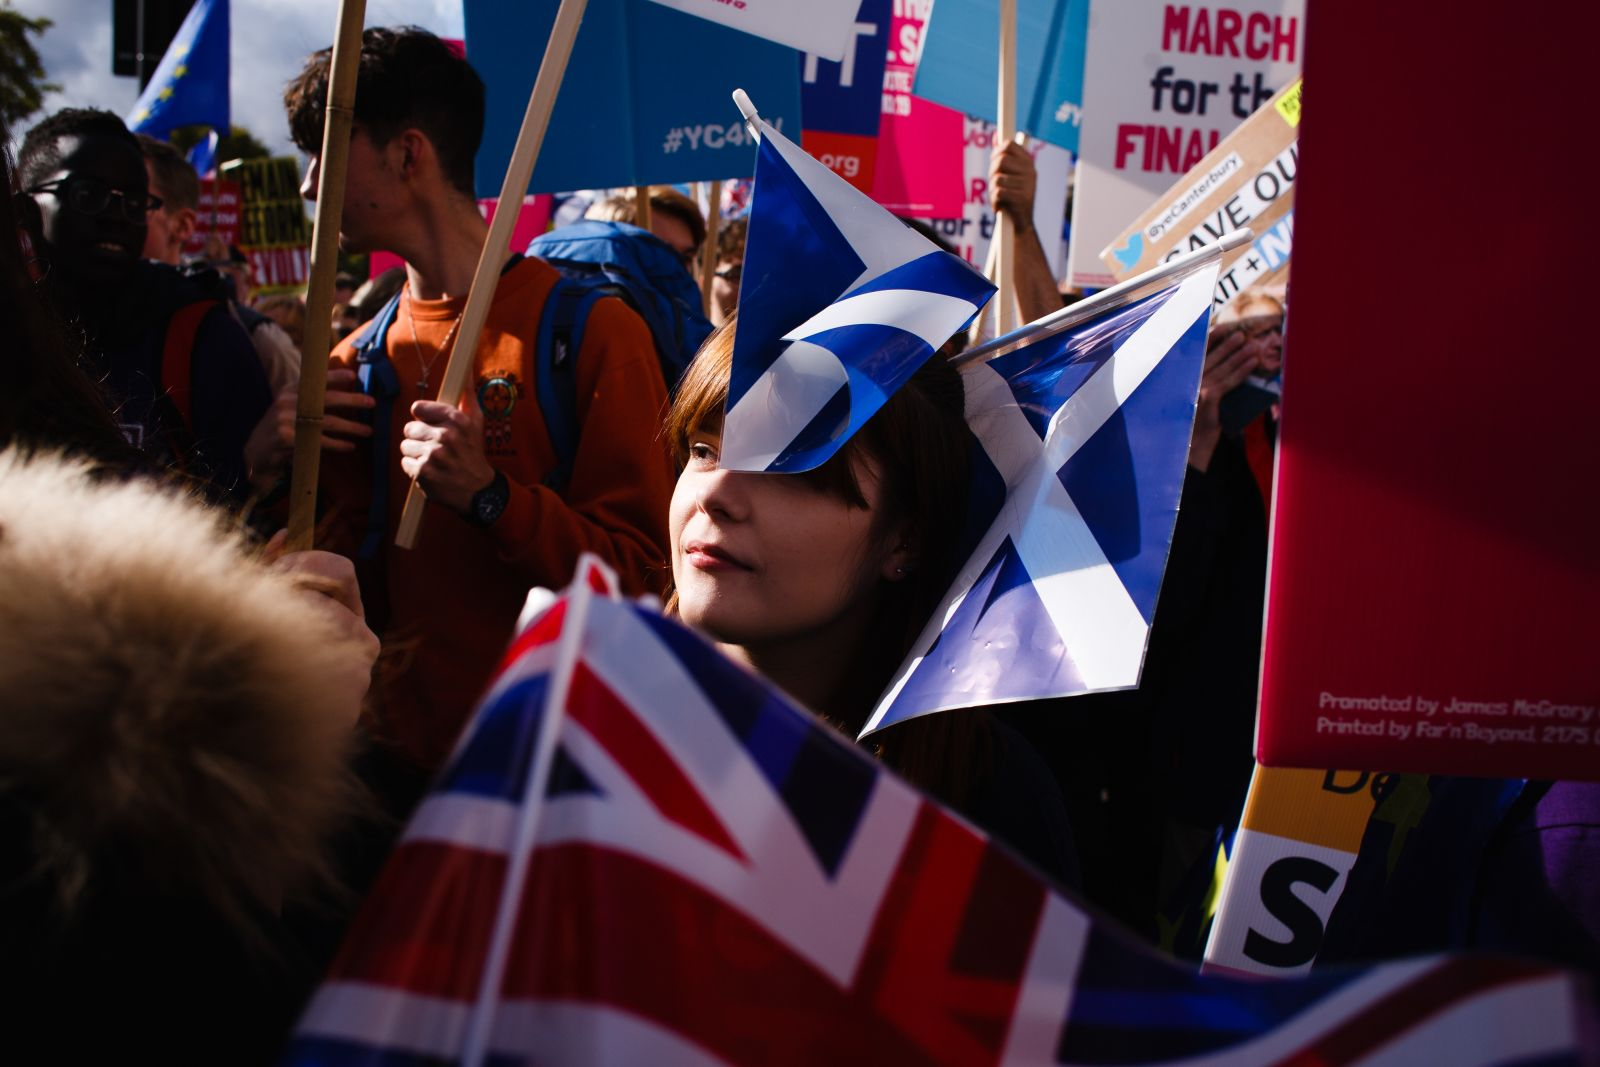 In photos: Thousands march for second Brexit referendum